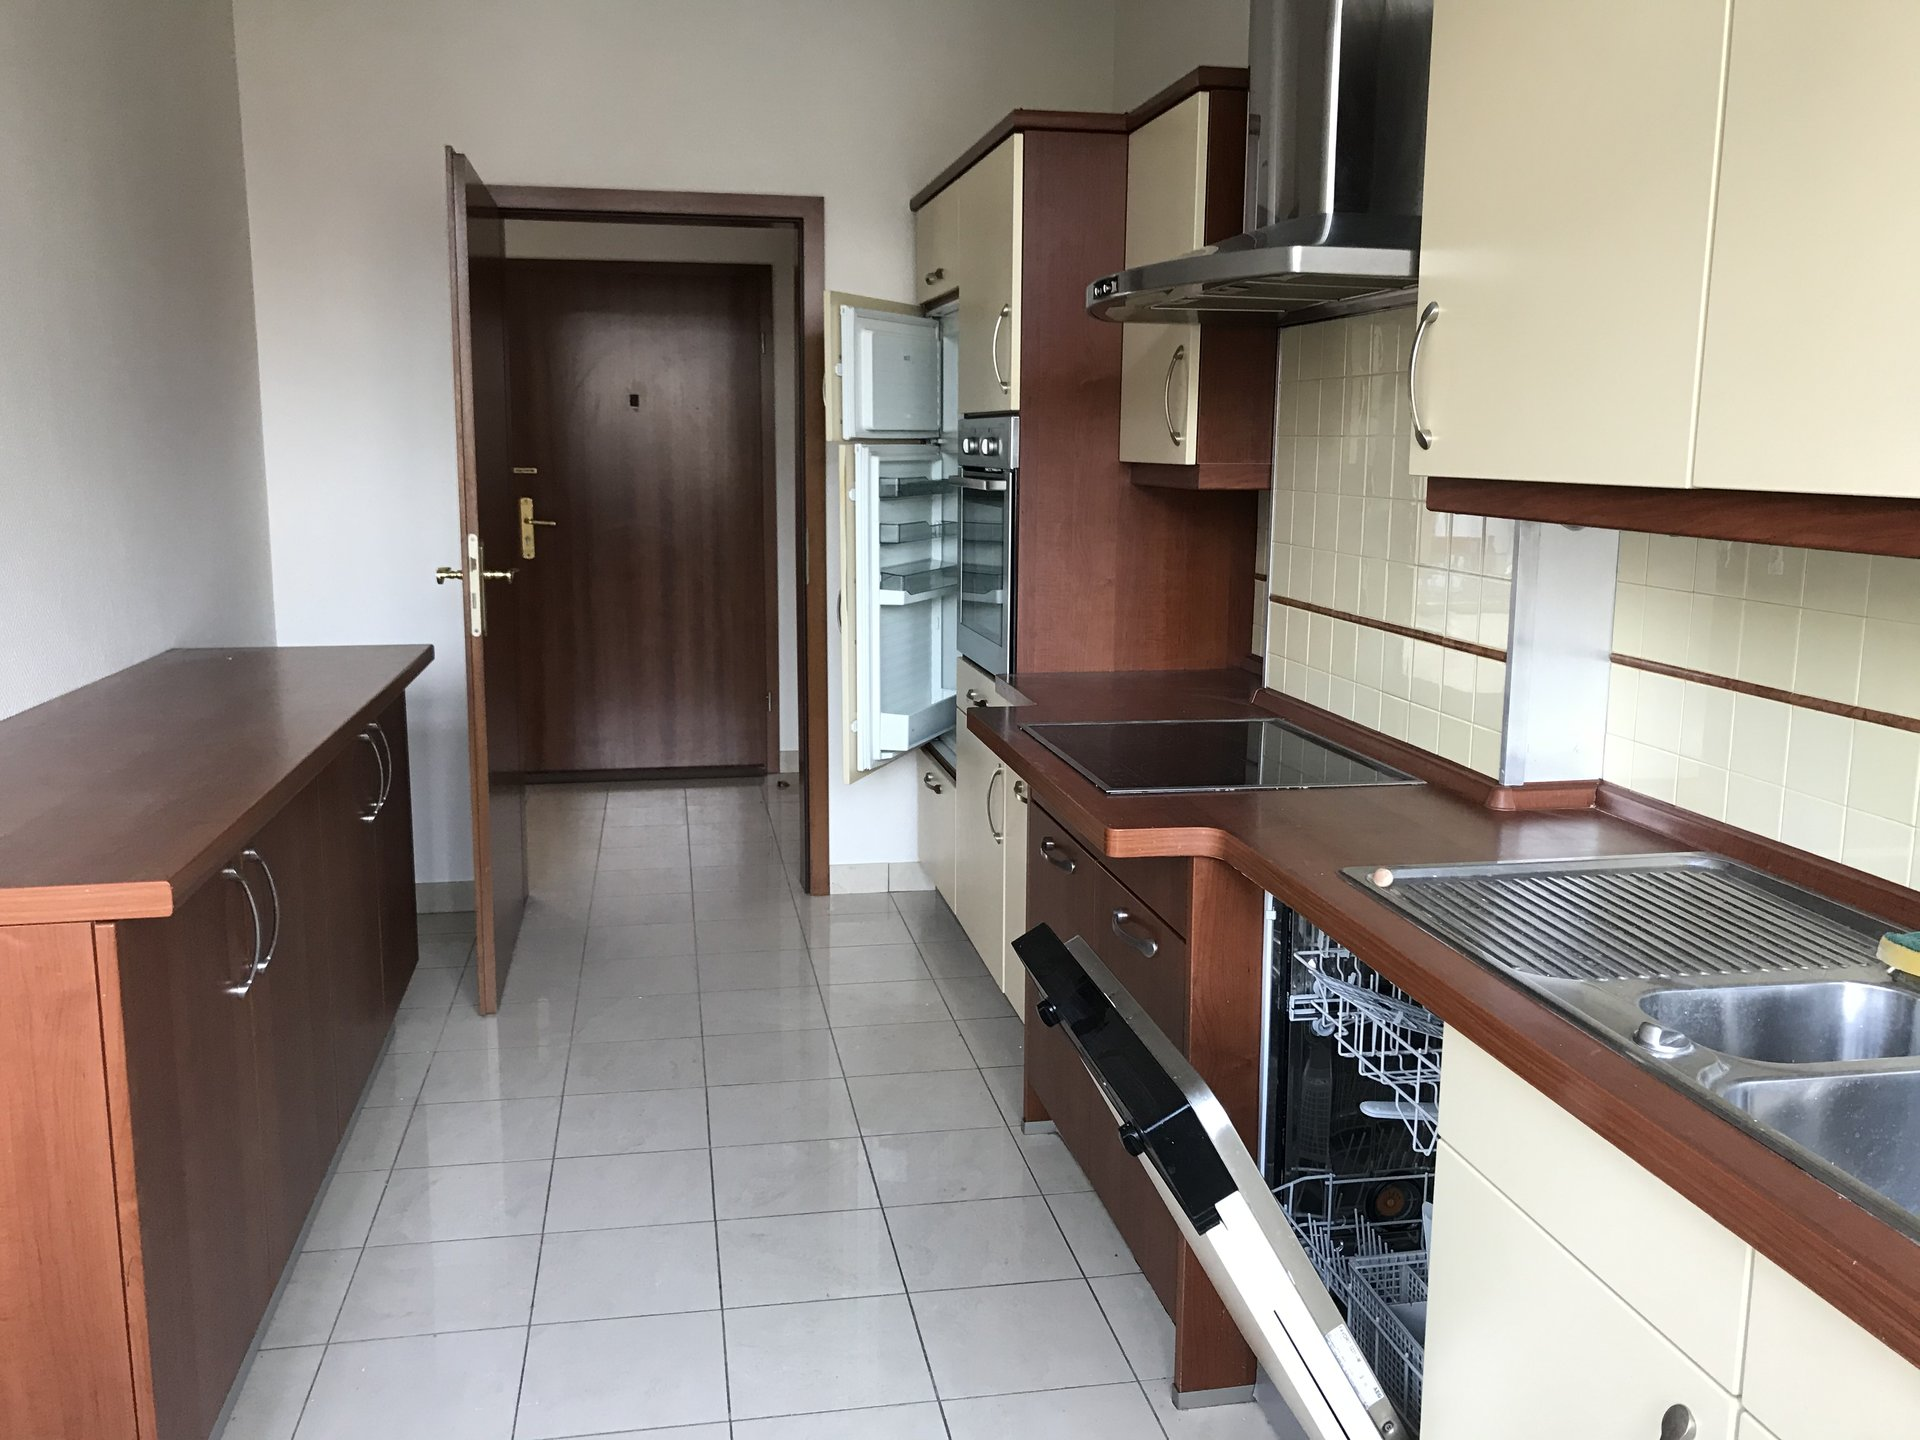 Location Appartement - Luxembourg Bonnevoie - Luxembourg